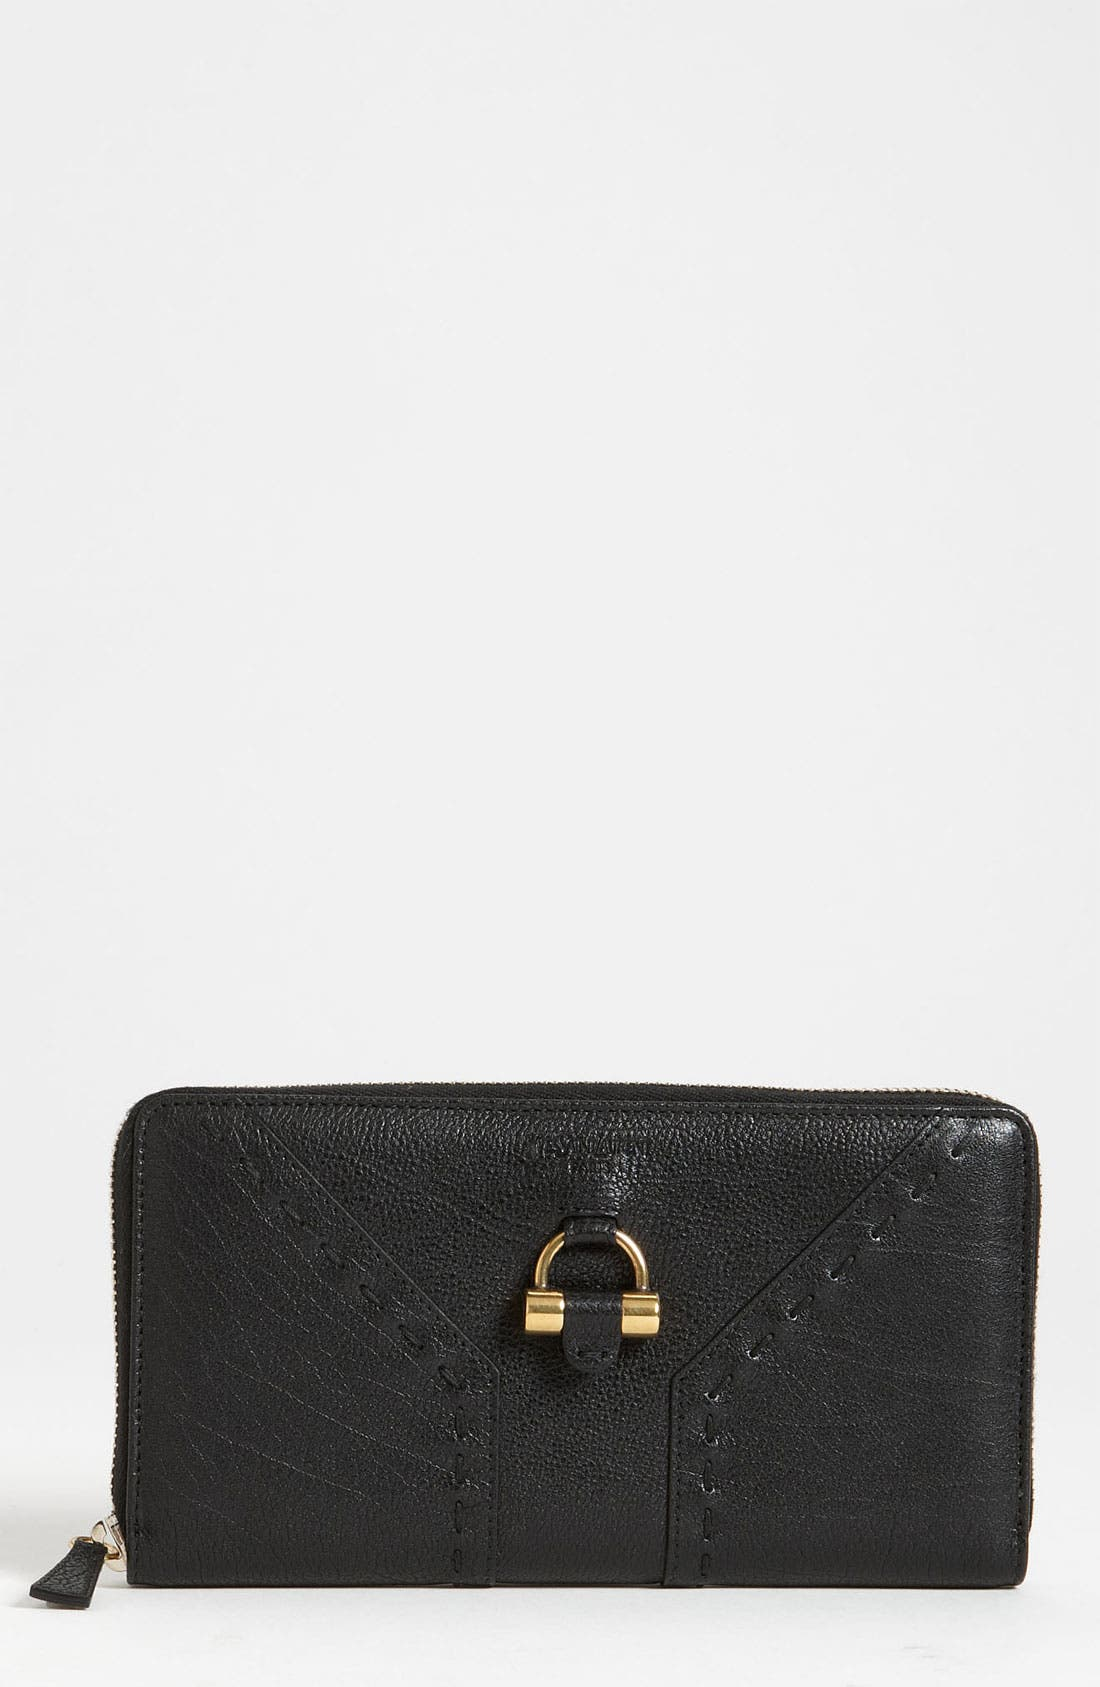 Alternate Image 1 Selected - Yves Saint Laurent 'Muse' Leather Wallet